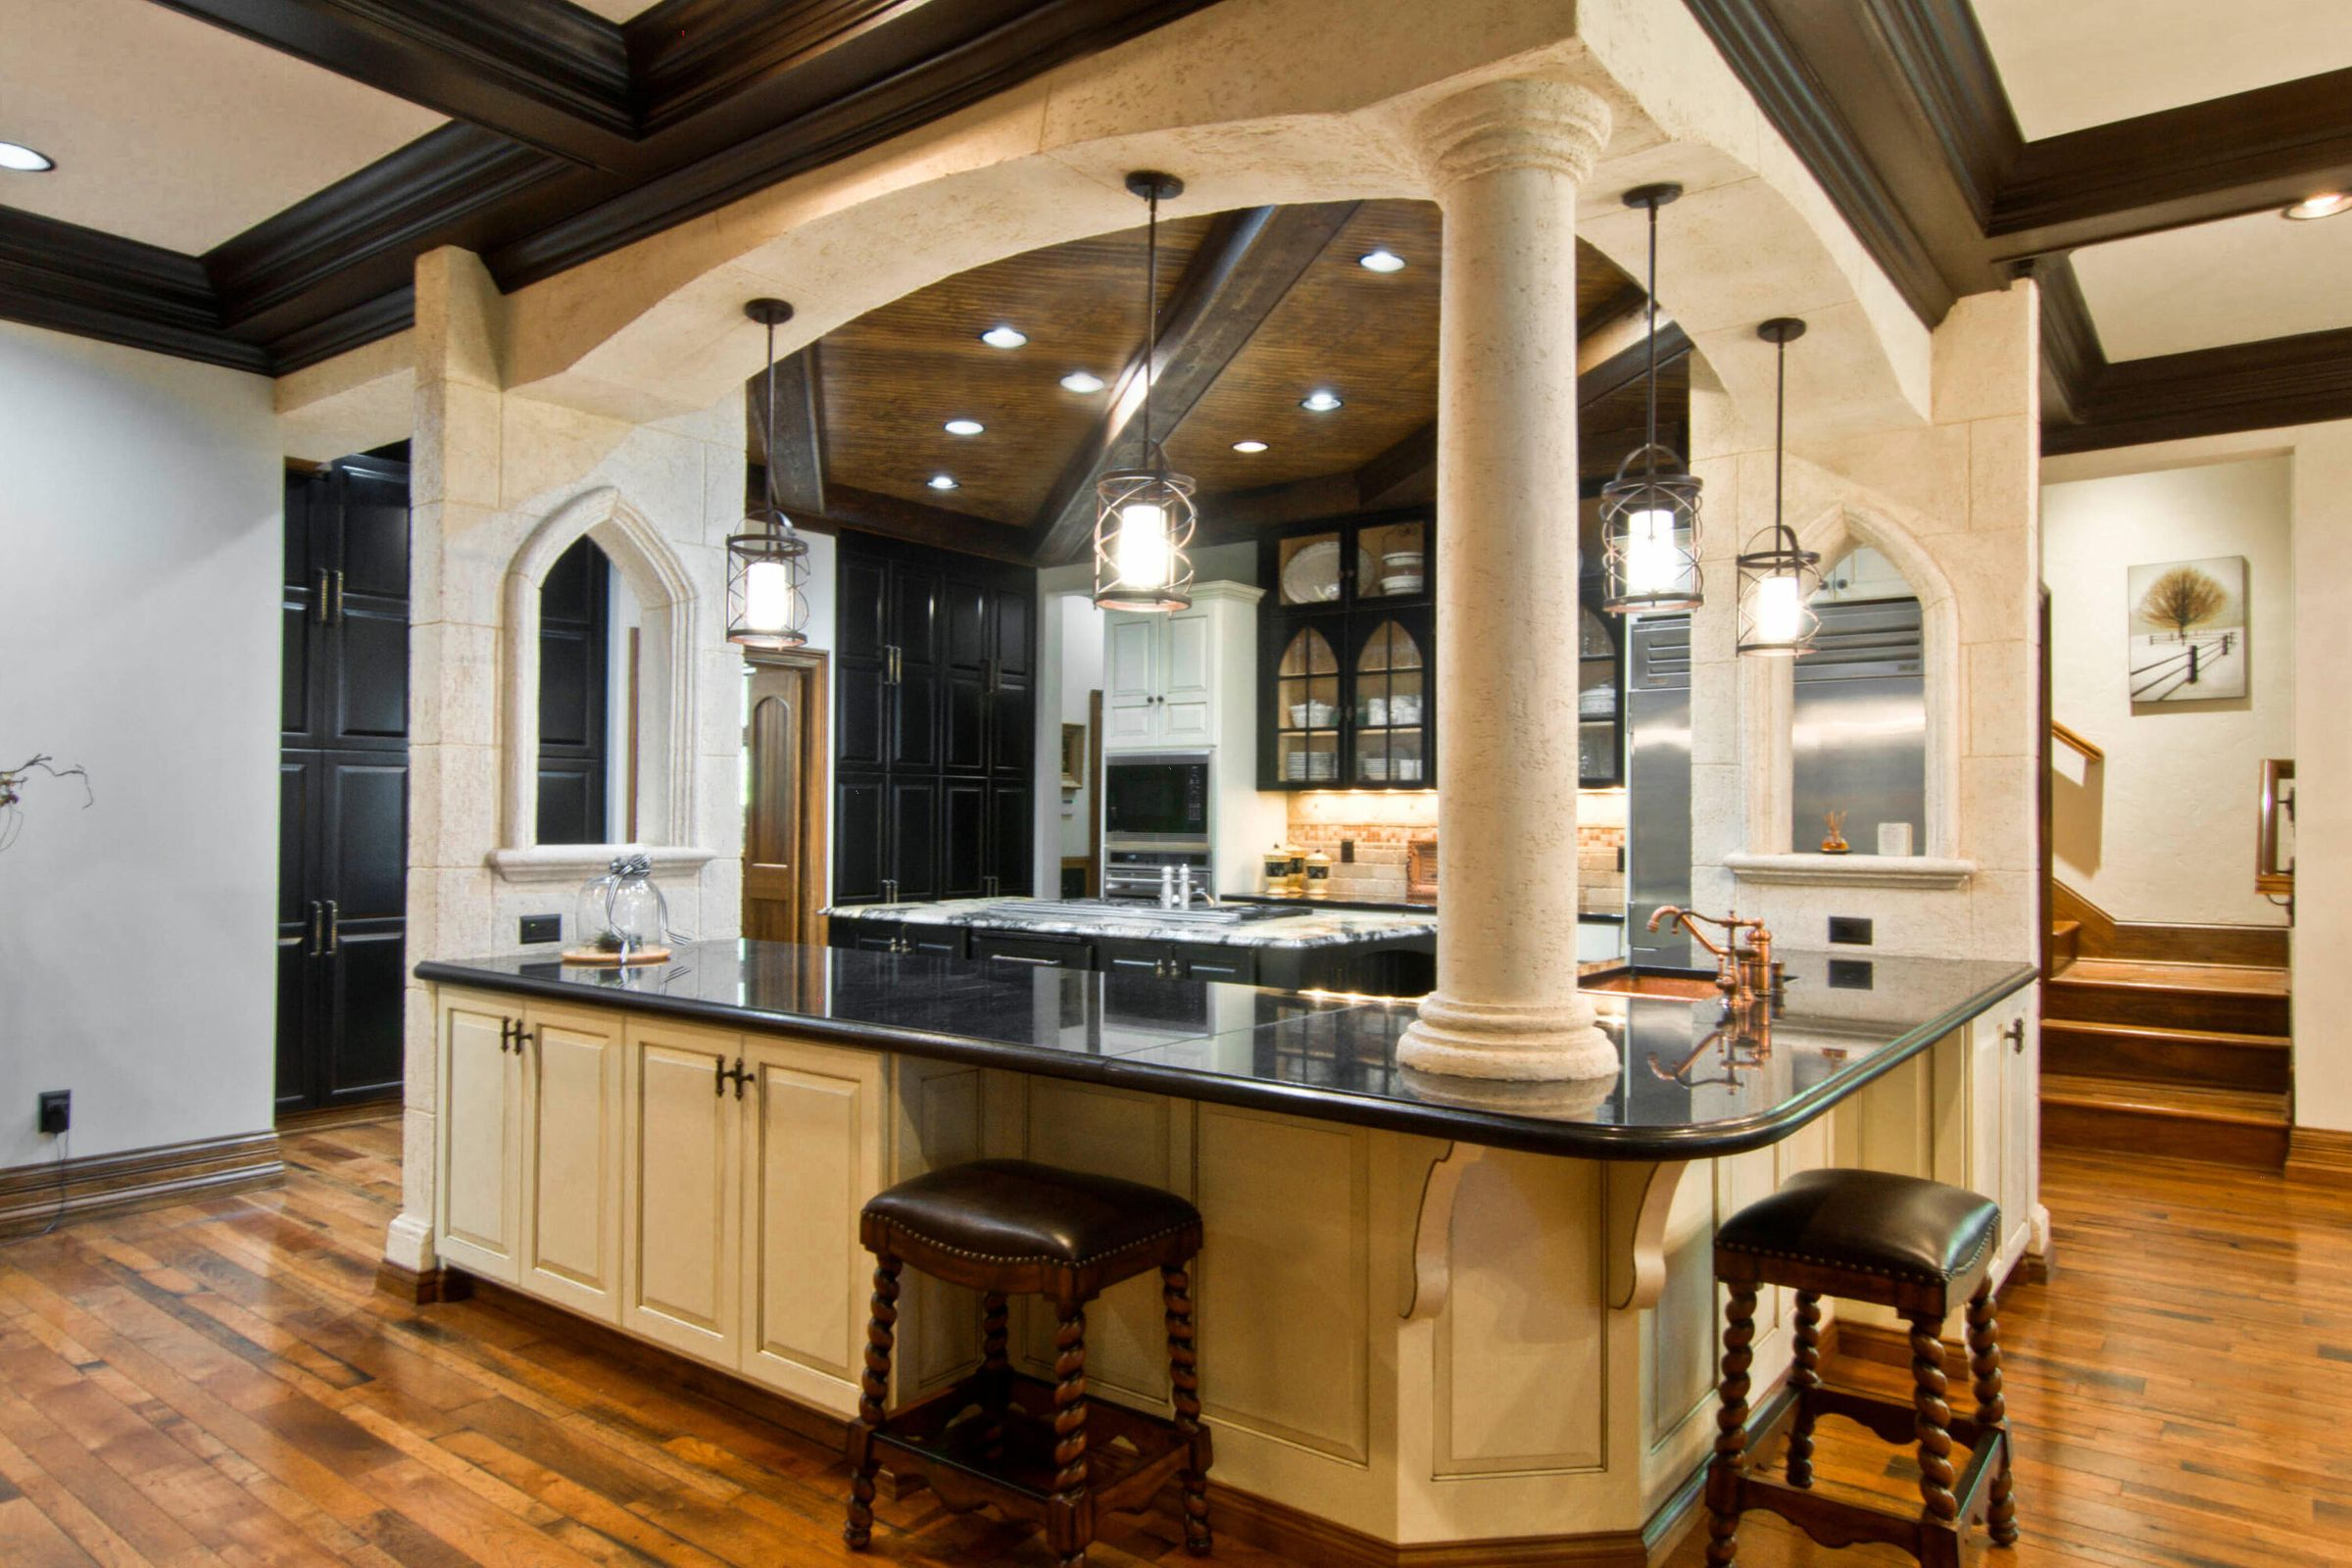 Expansive Counters & Storage Galore